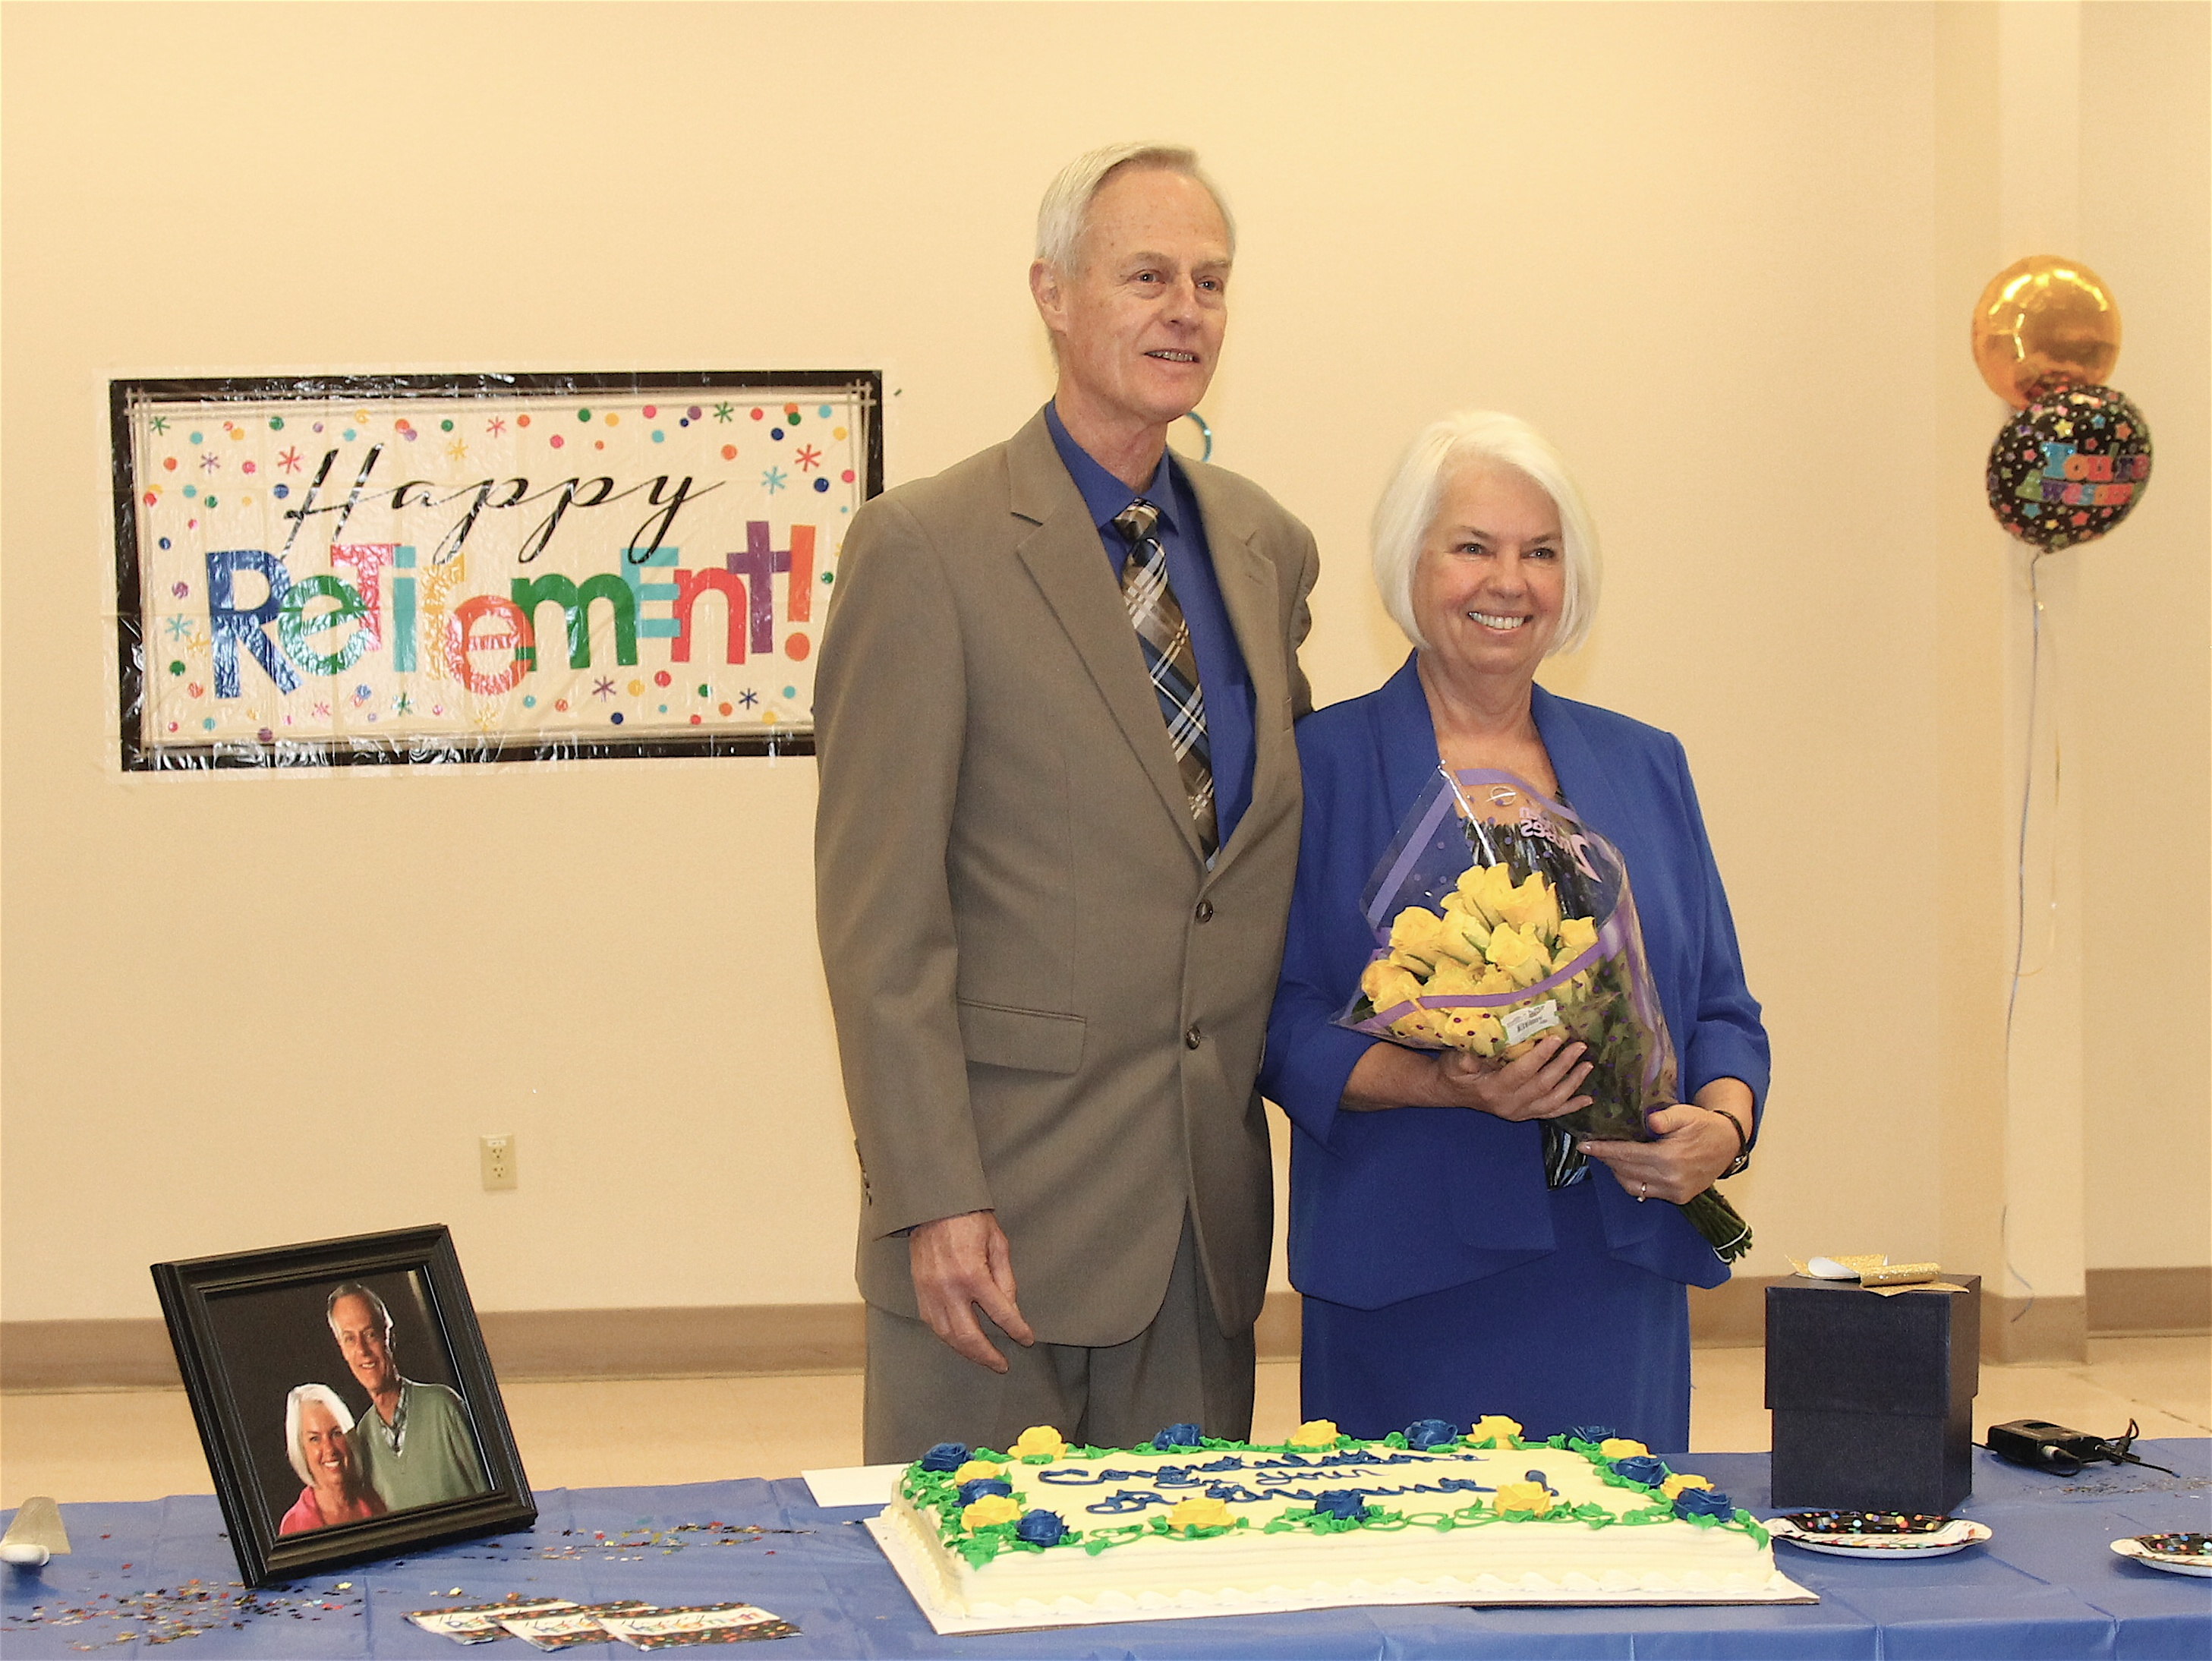 Larry and Karen Walker at their celebration at the Feast of Tabernacles in Bend, Oregon.